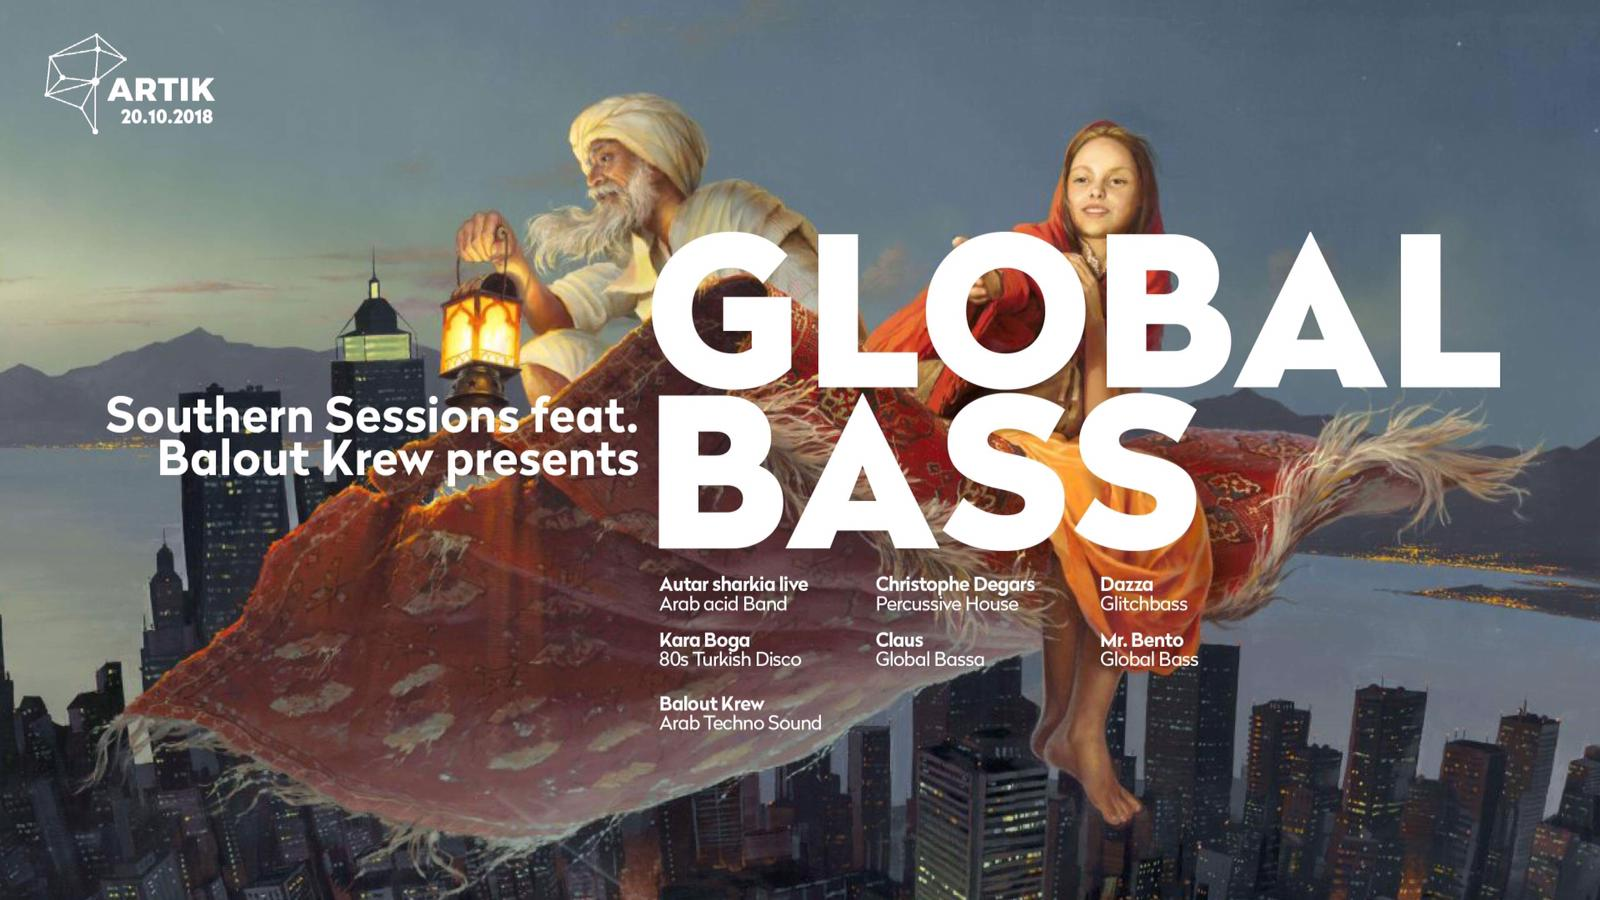 Southern Sessions feat. Balout Krew presents: Global Bass || 20.10.2018